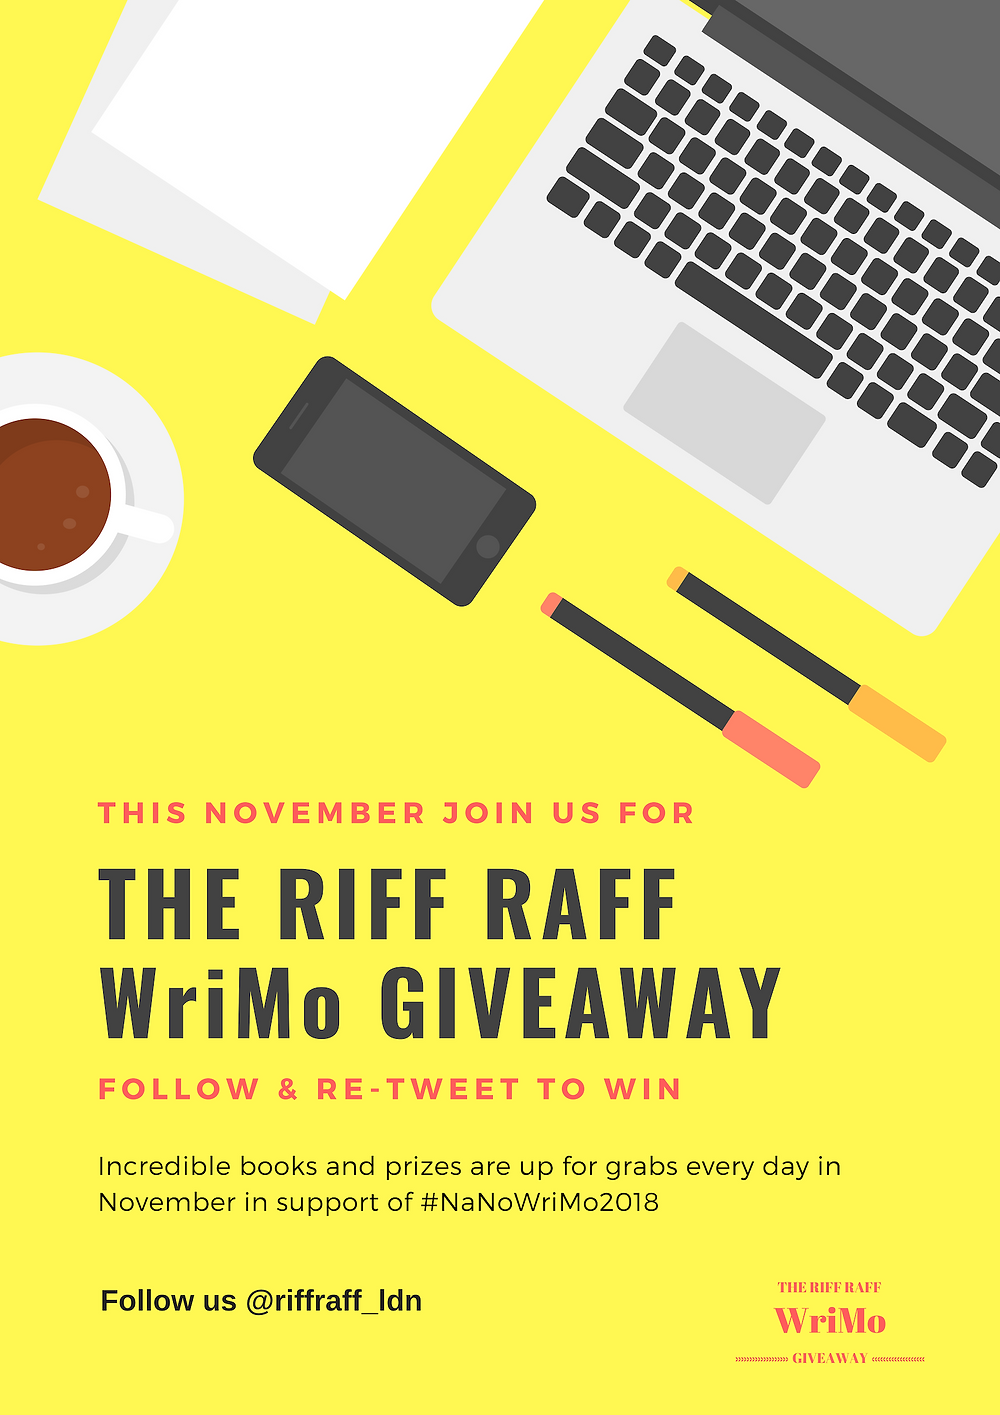 The Riff Raff WriMo Giveaway